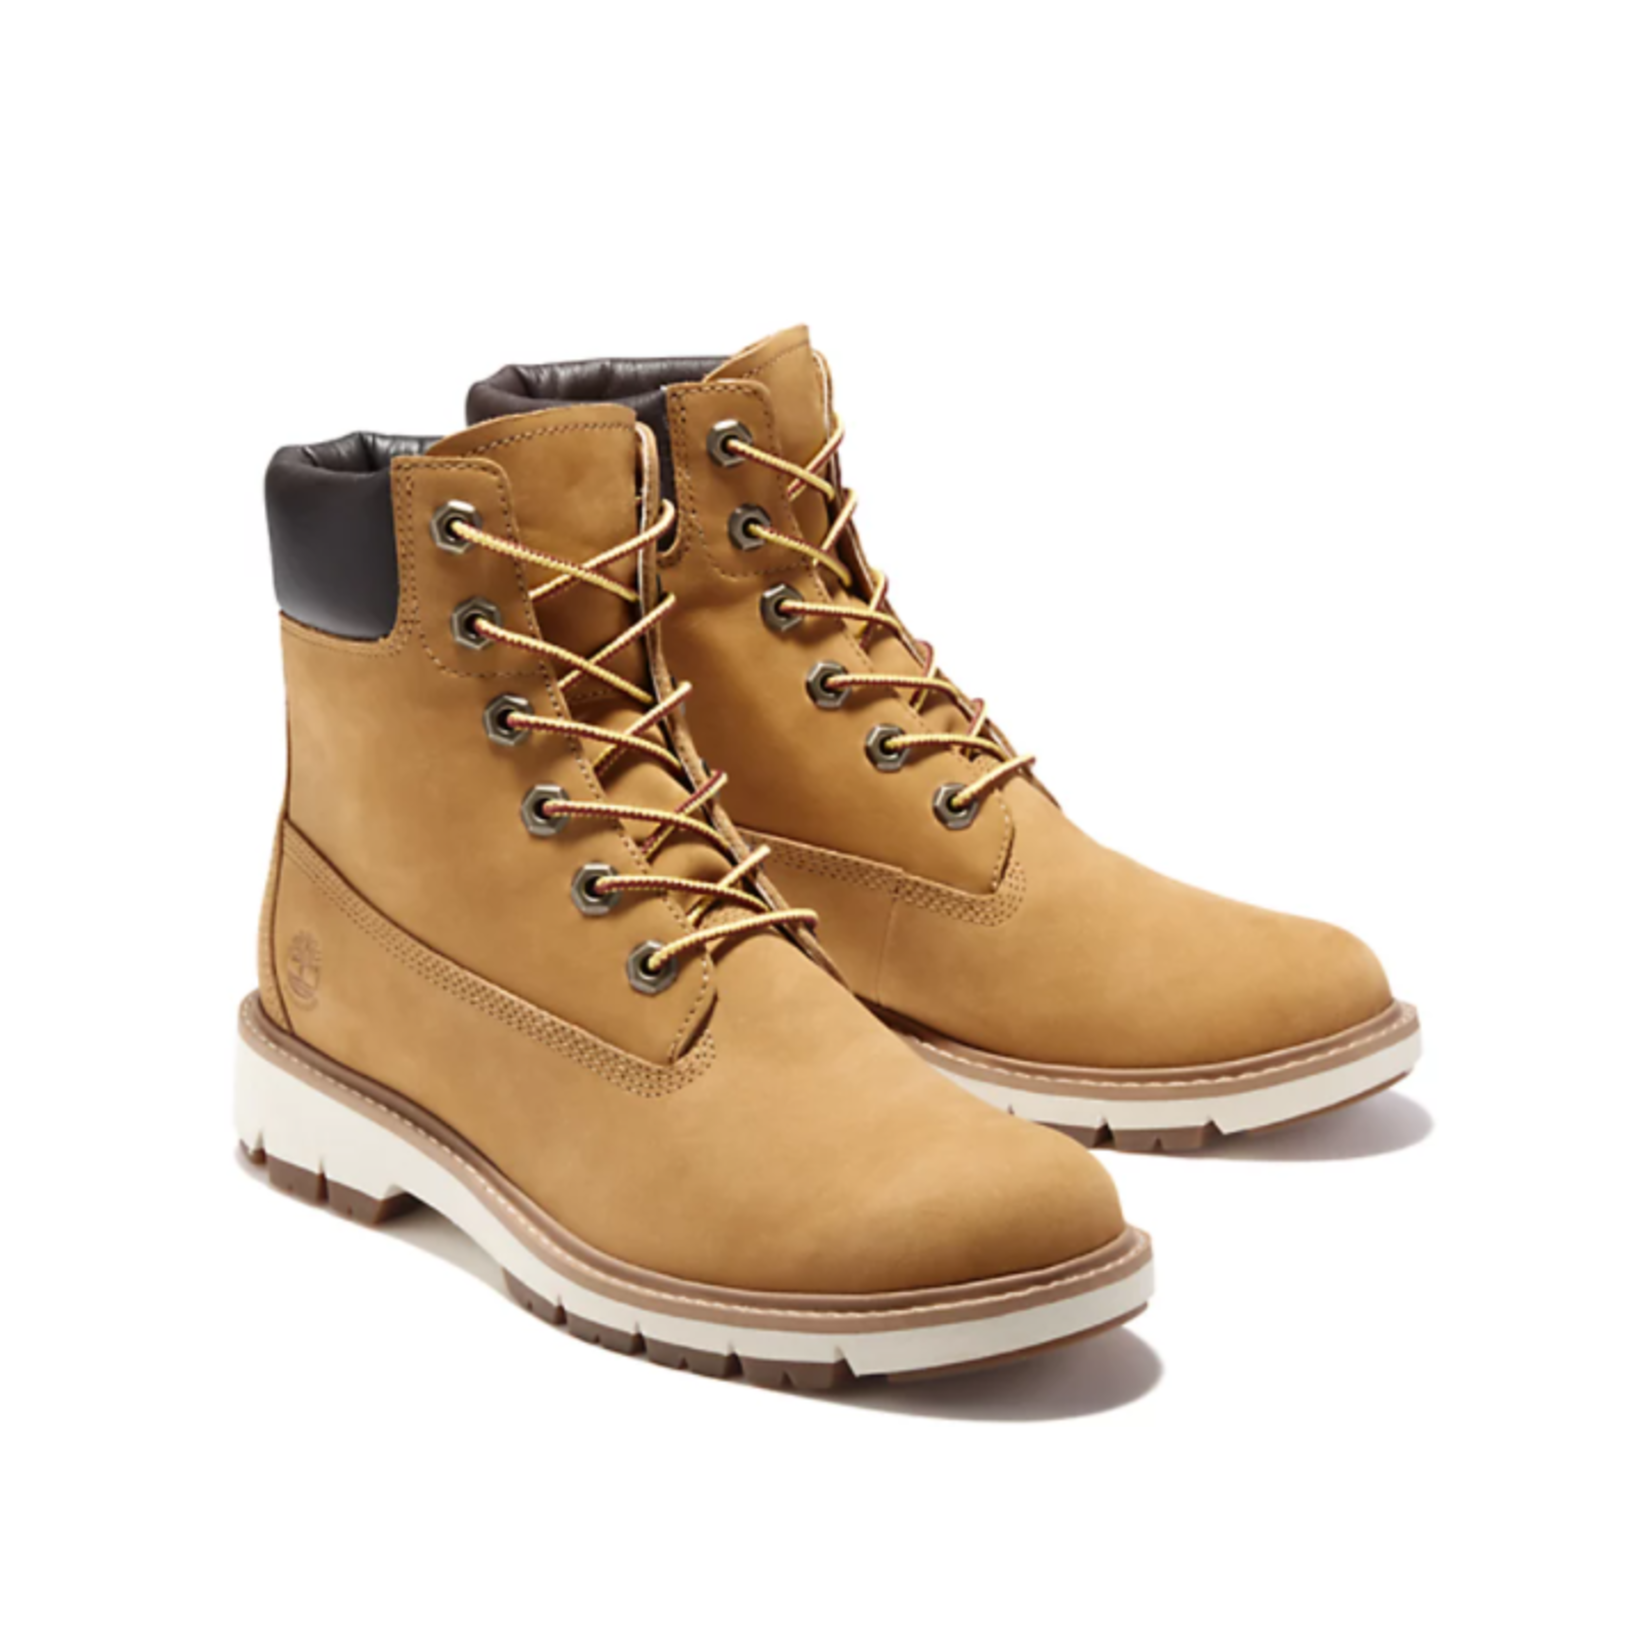 Timberland LUCIA WAY 6 INCH BOOT FOR WOMEN IN YELLOW